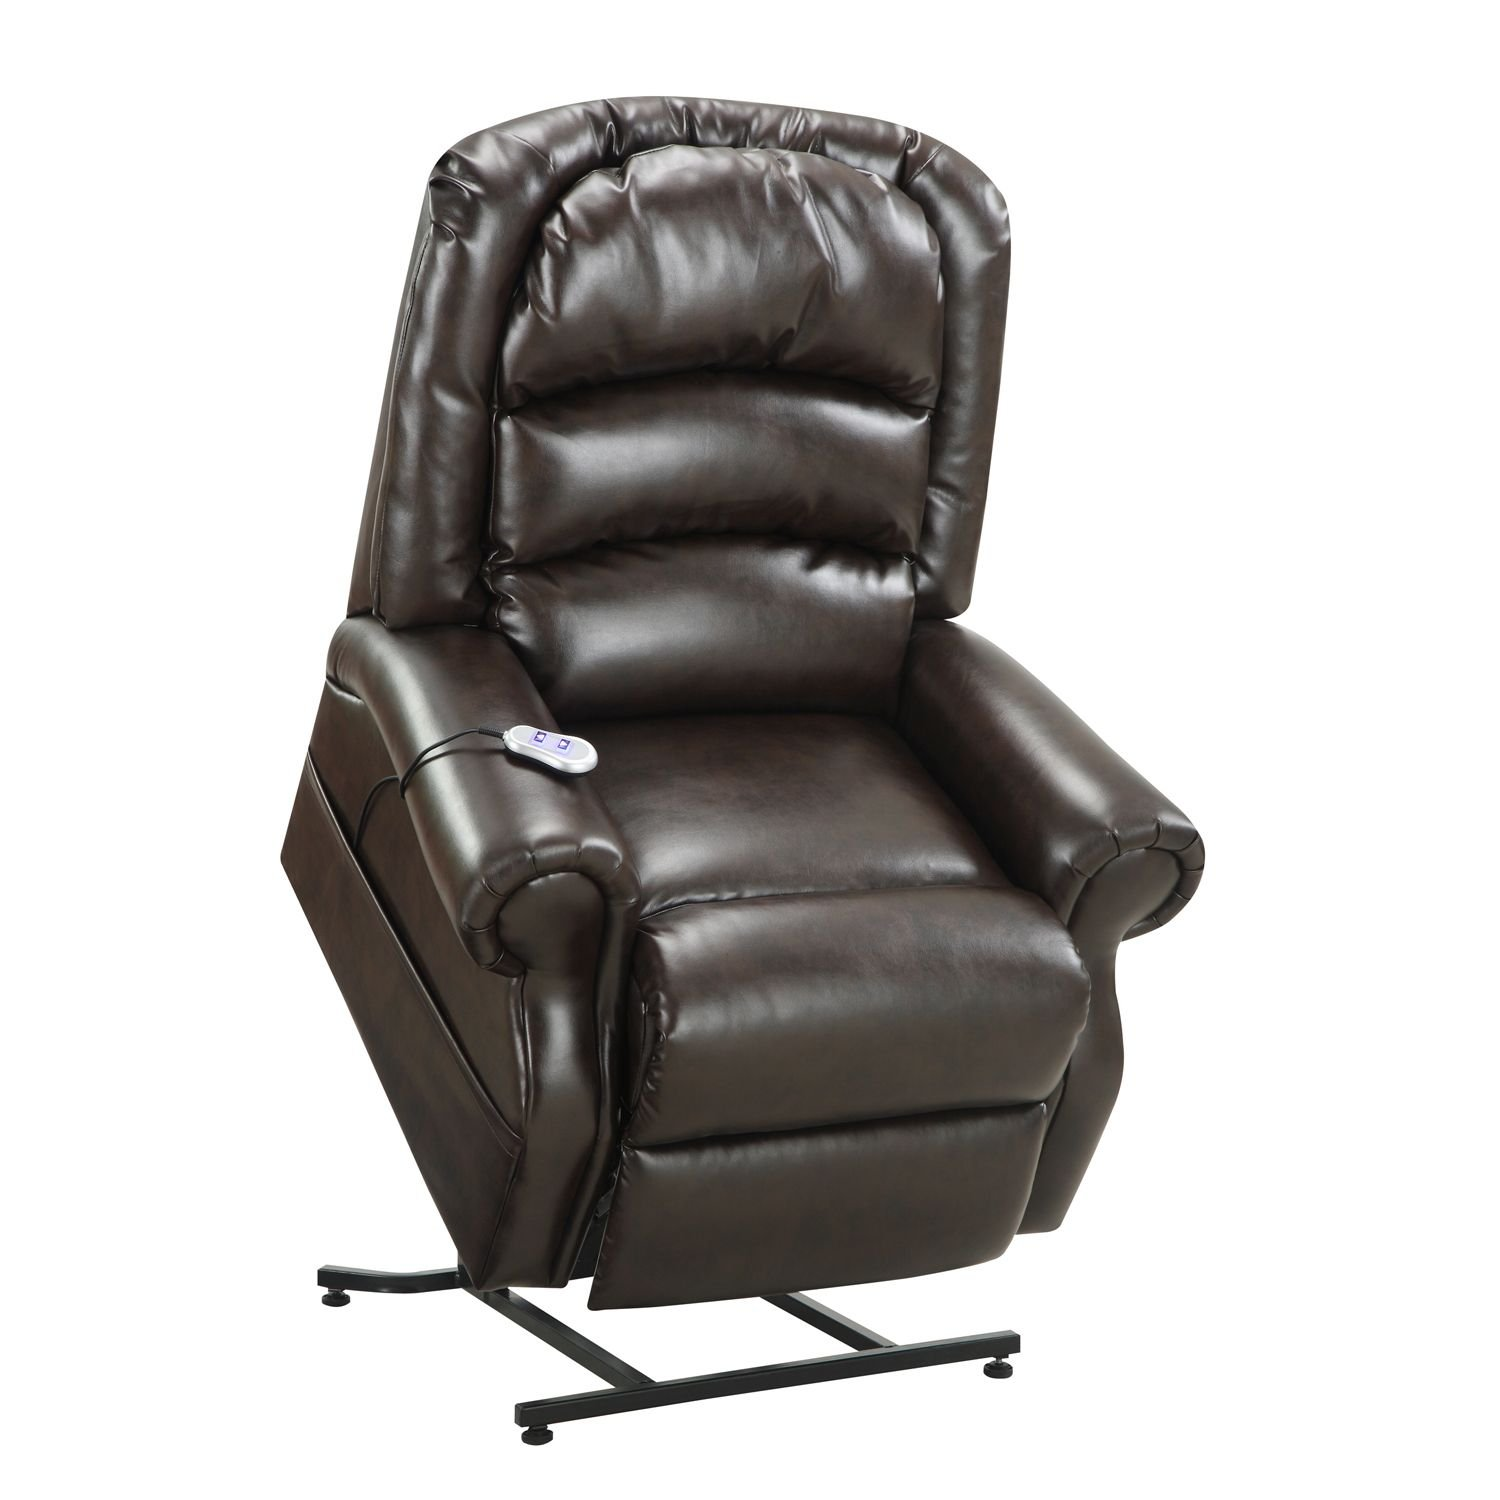 Leather lift chairs - Amazon Com Home Meridian Hayden Power Lift Chair With Heat Massage Chocolate Bonded Leather Health Personal Care